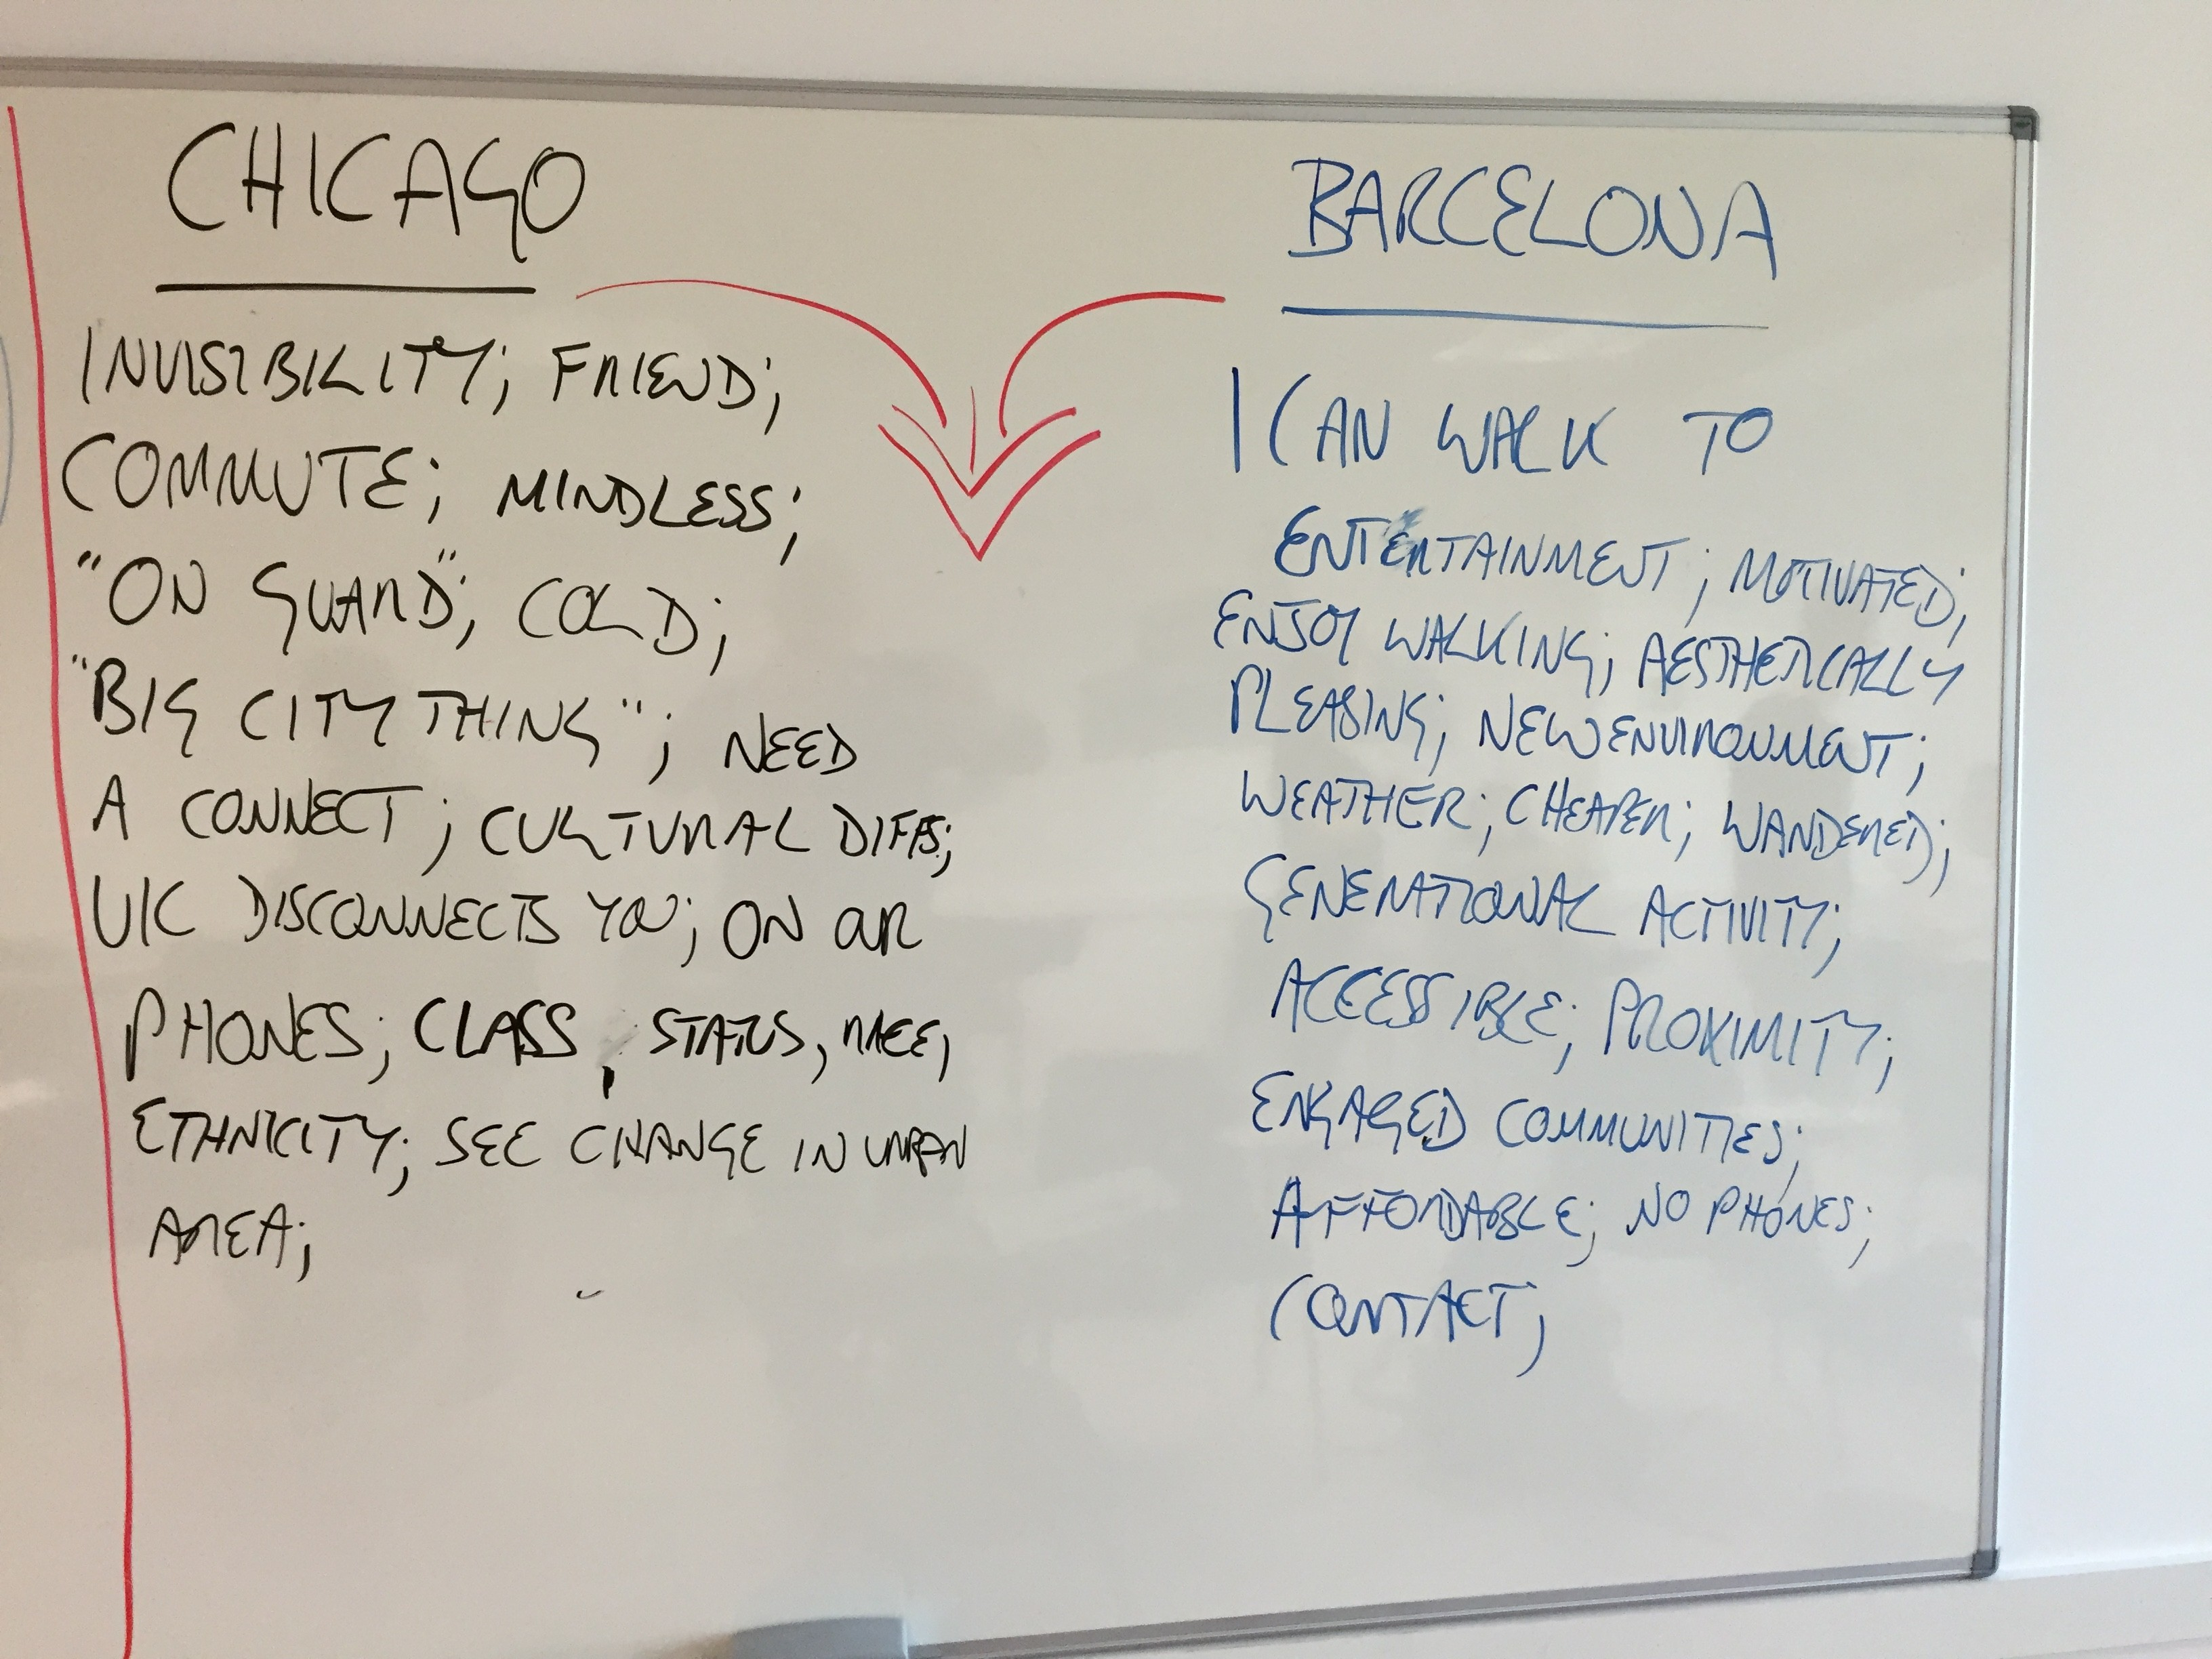 For Faculty: Making the Transition From Chicago to Barcelona